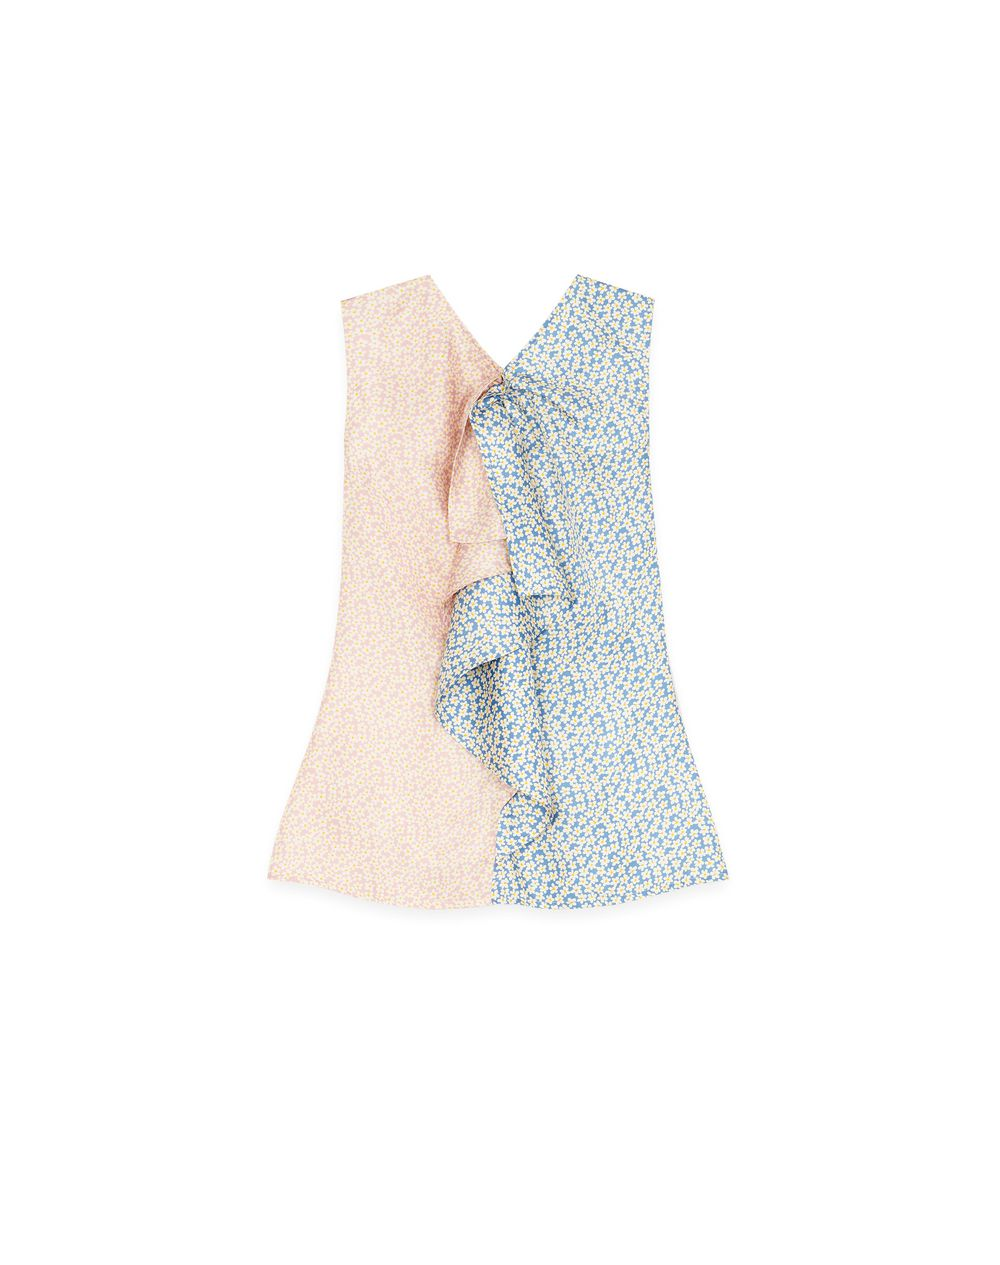 SLEEVELESS RUFFLE BLOUSE - Lanvin